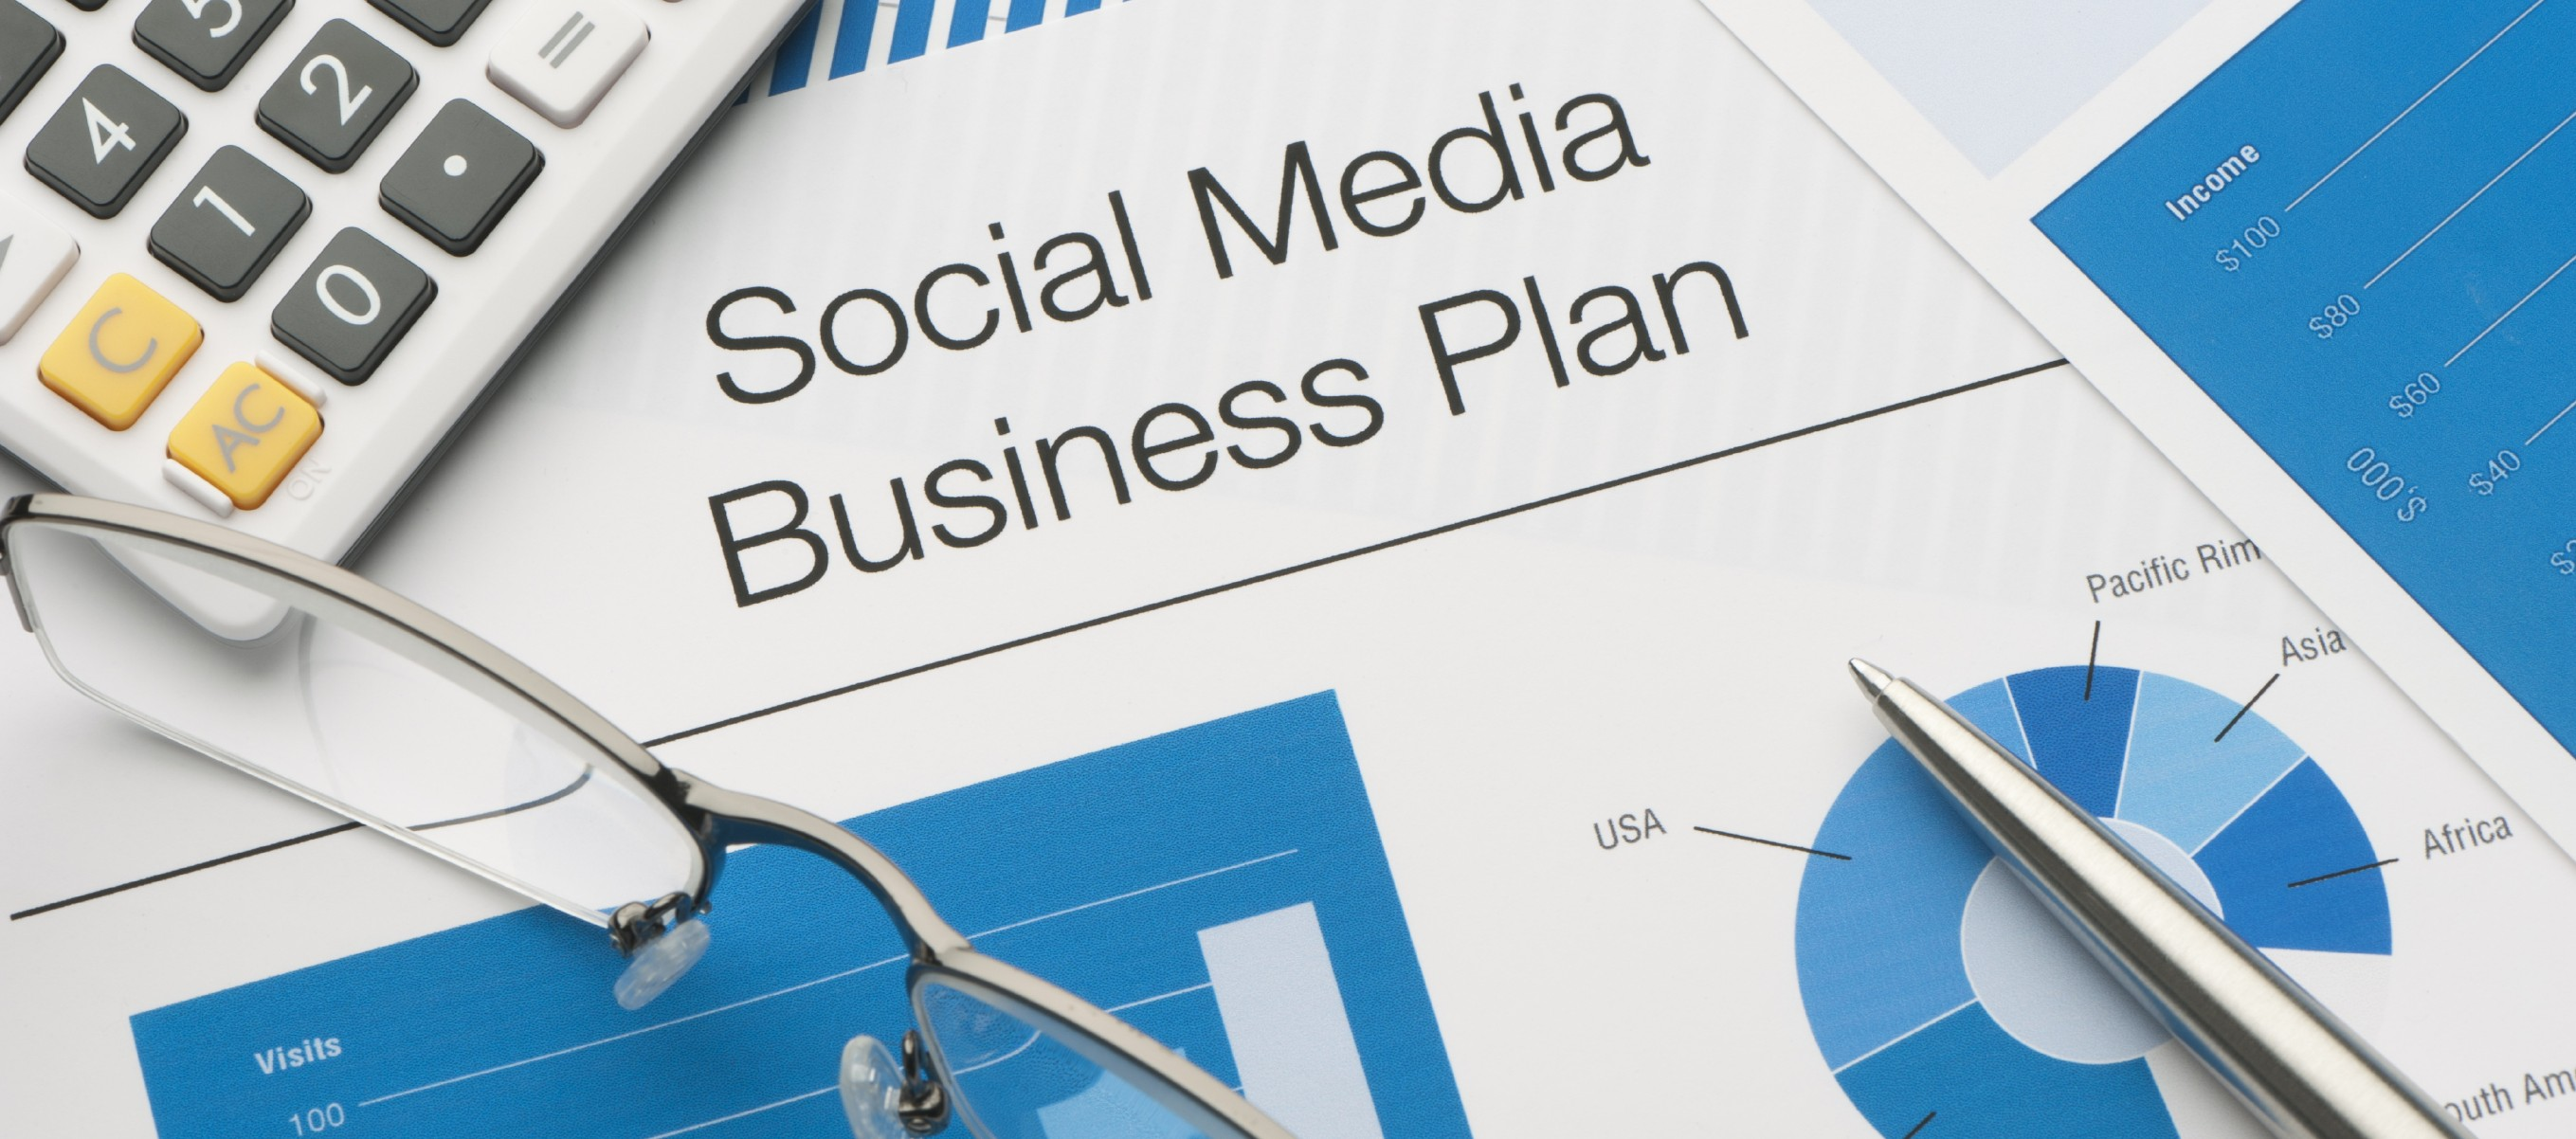 Social-Media-Business-Plan-e1430594856666